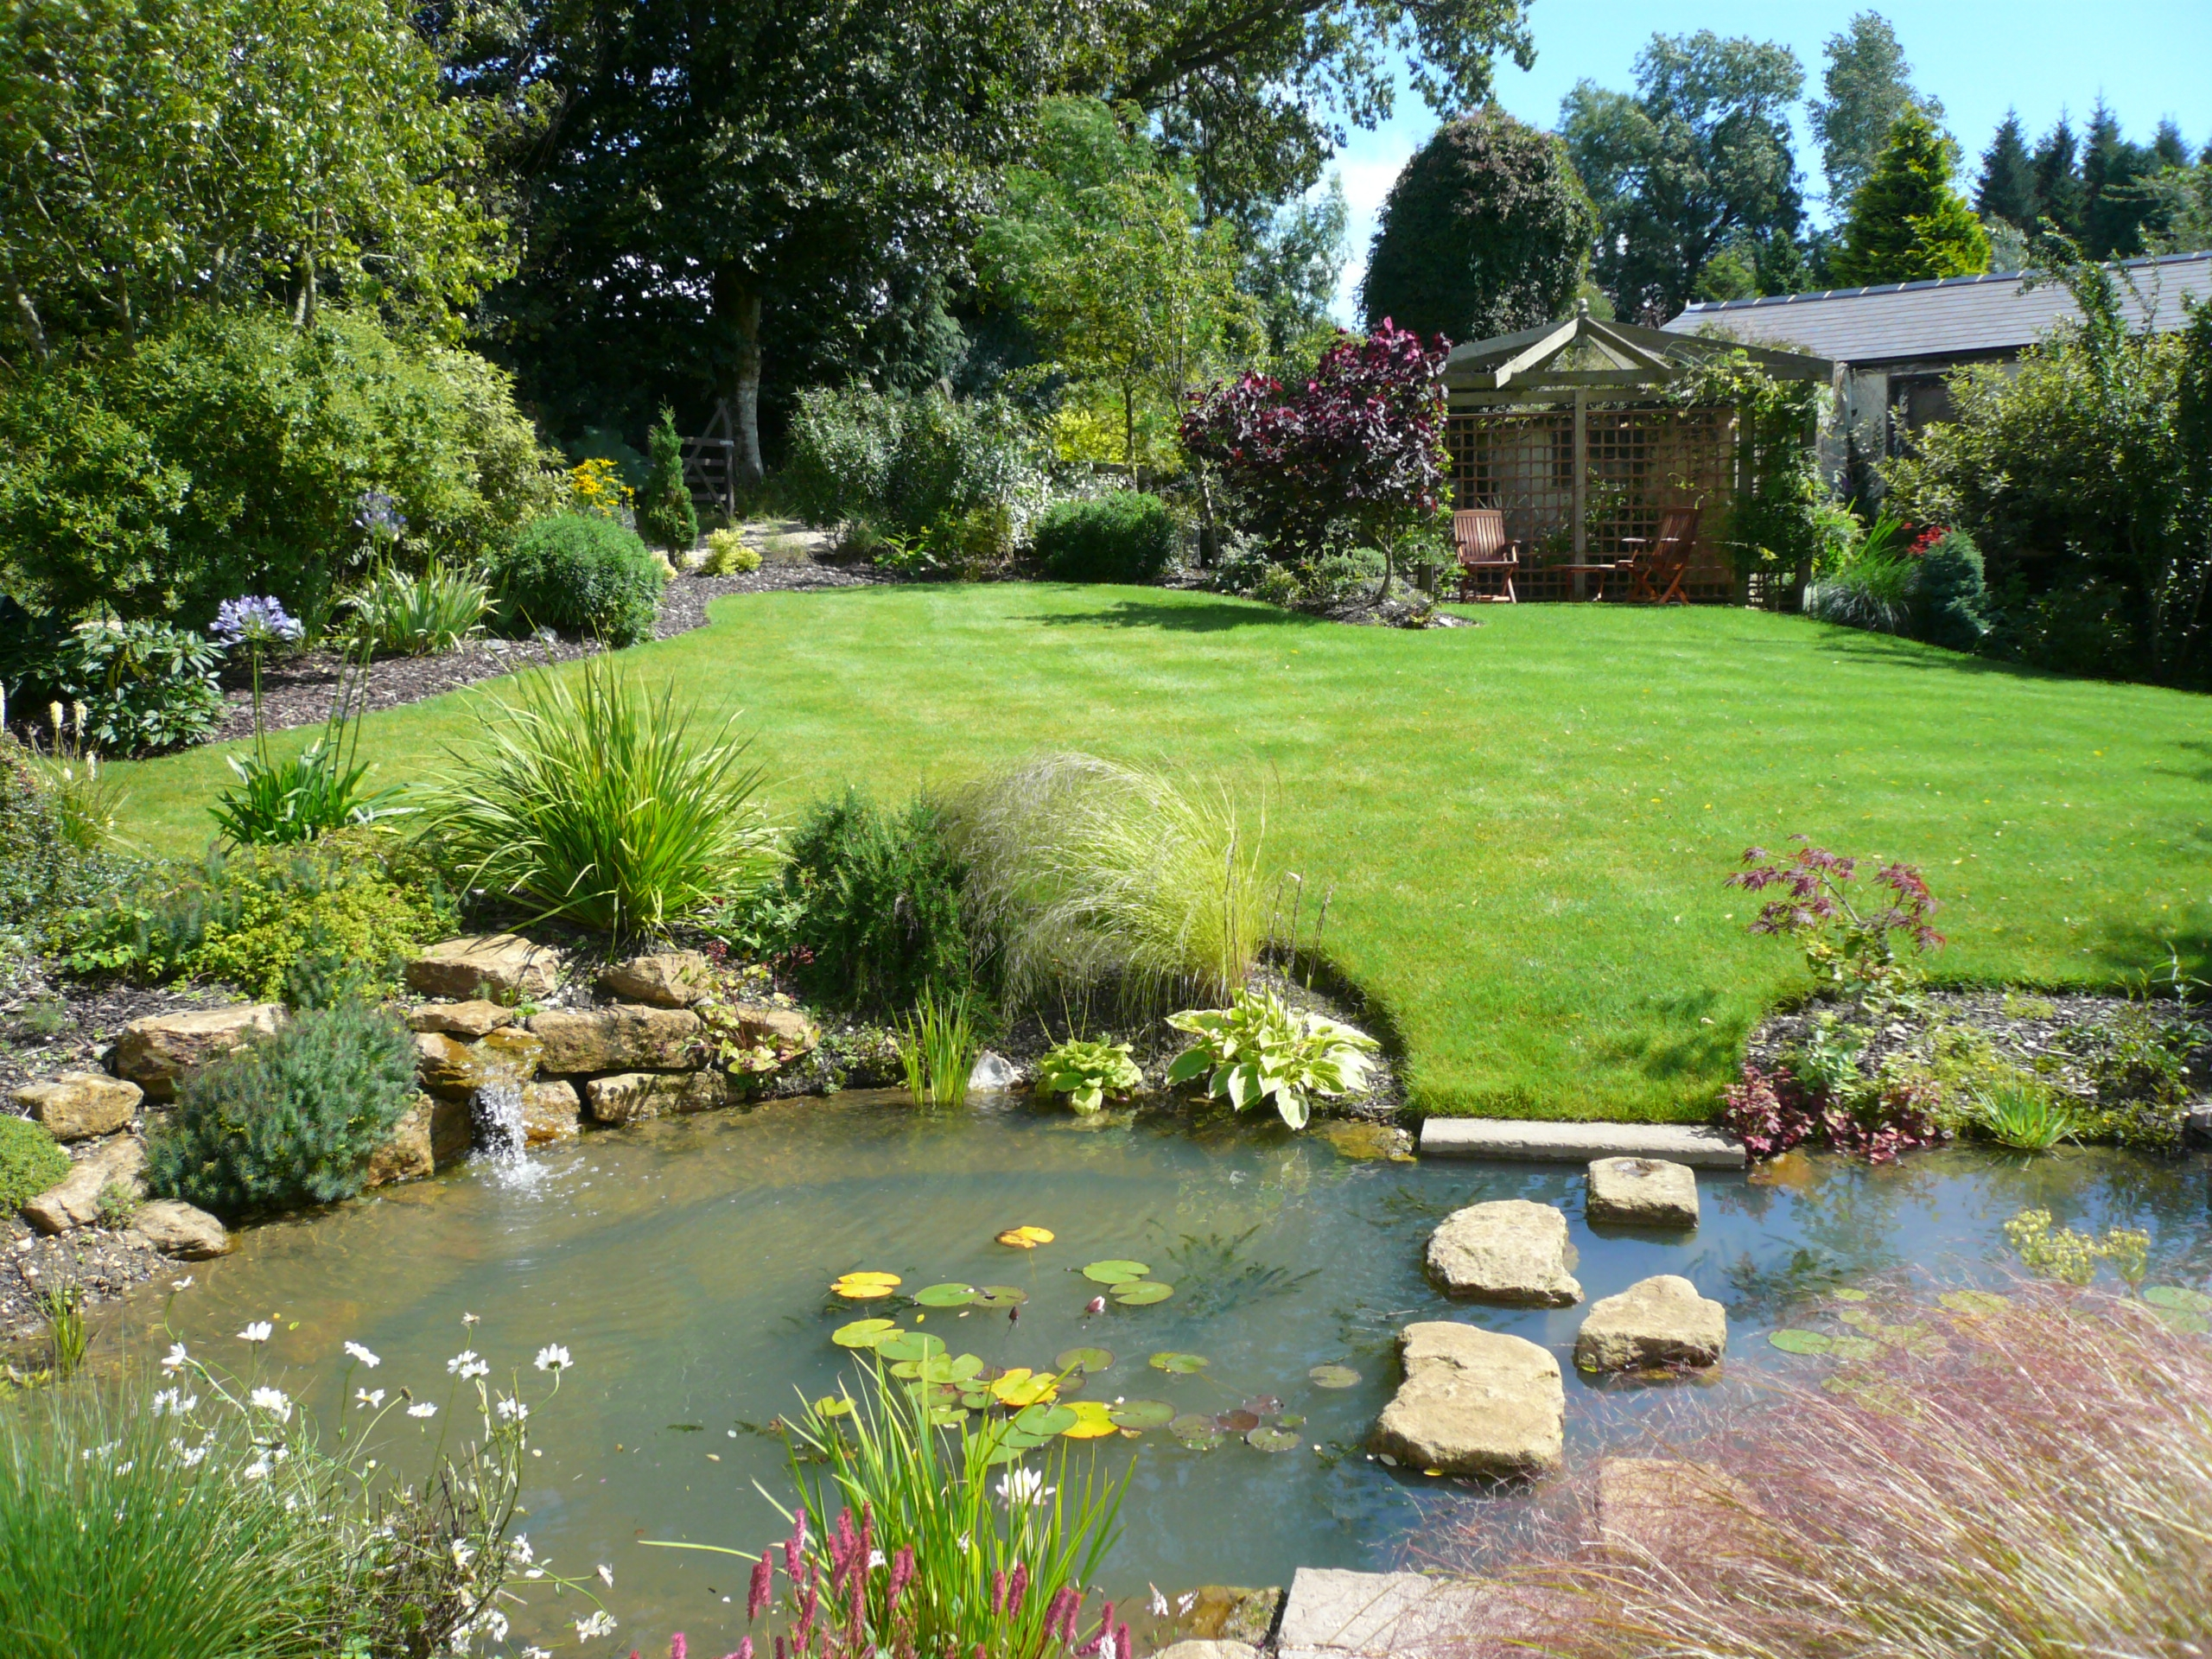 garden landscape design appealing garden landscaping to enhance its beauty - carehomedecor ZZQJFTW